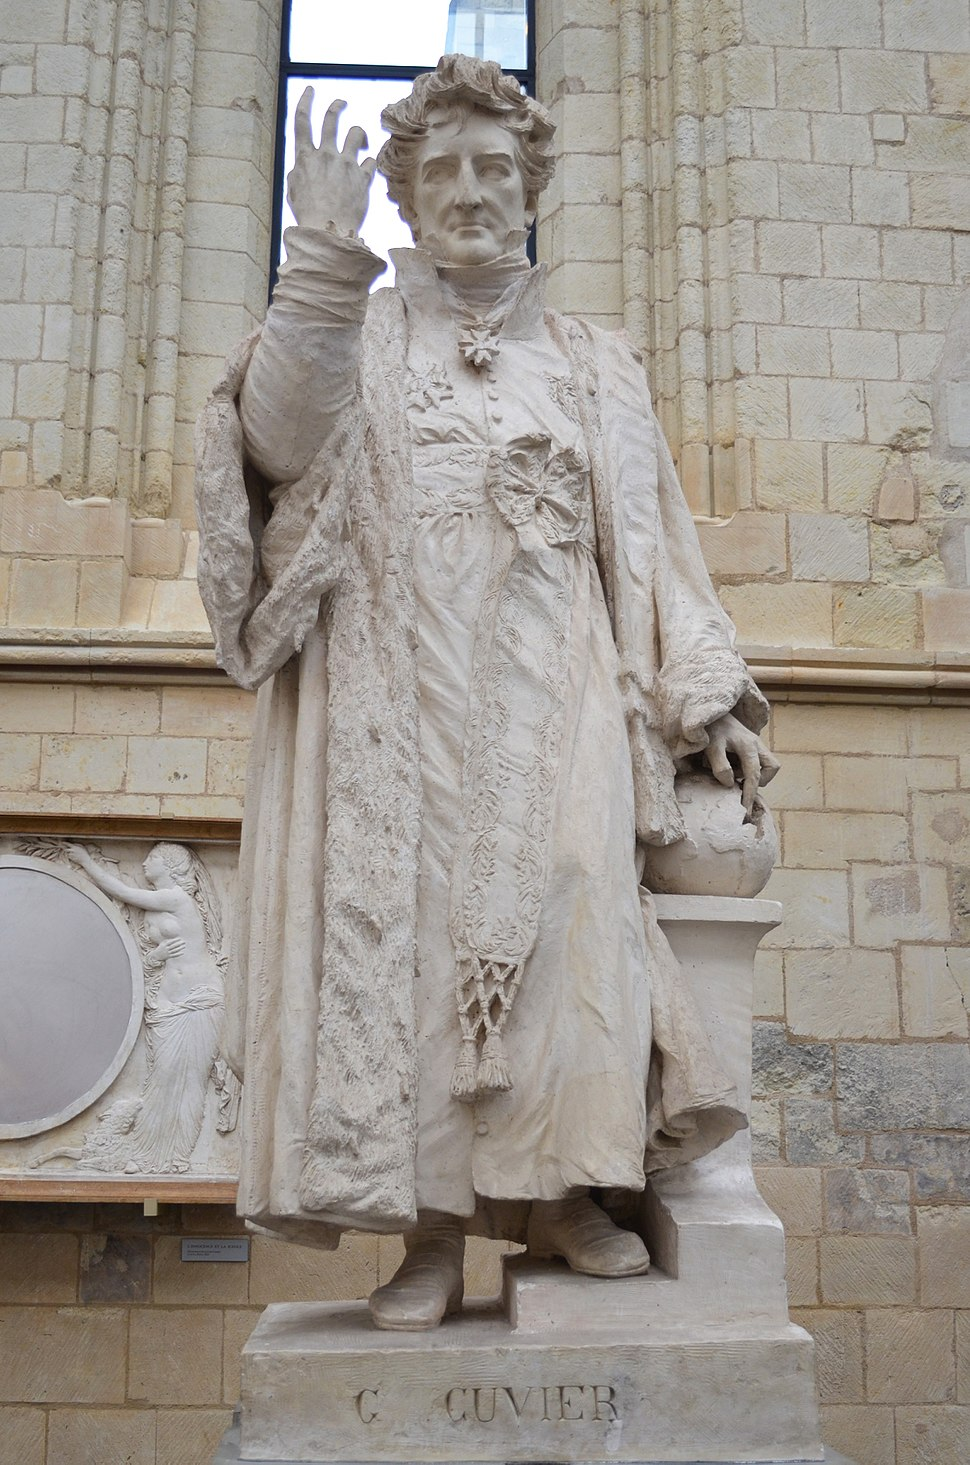 David d'Angers - Georges Cuvier